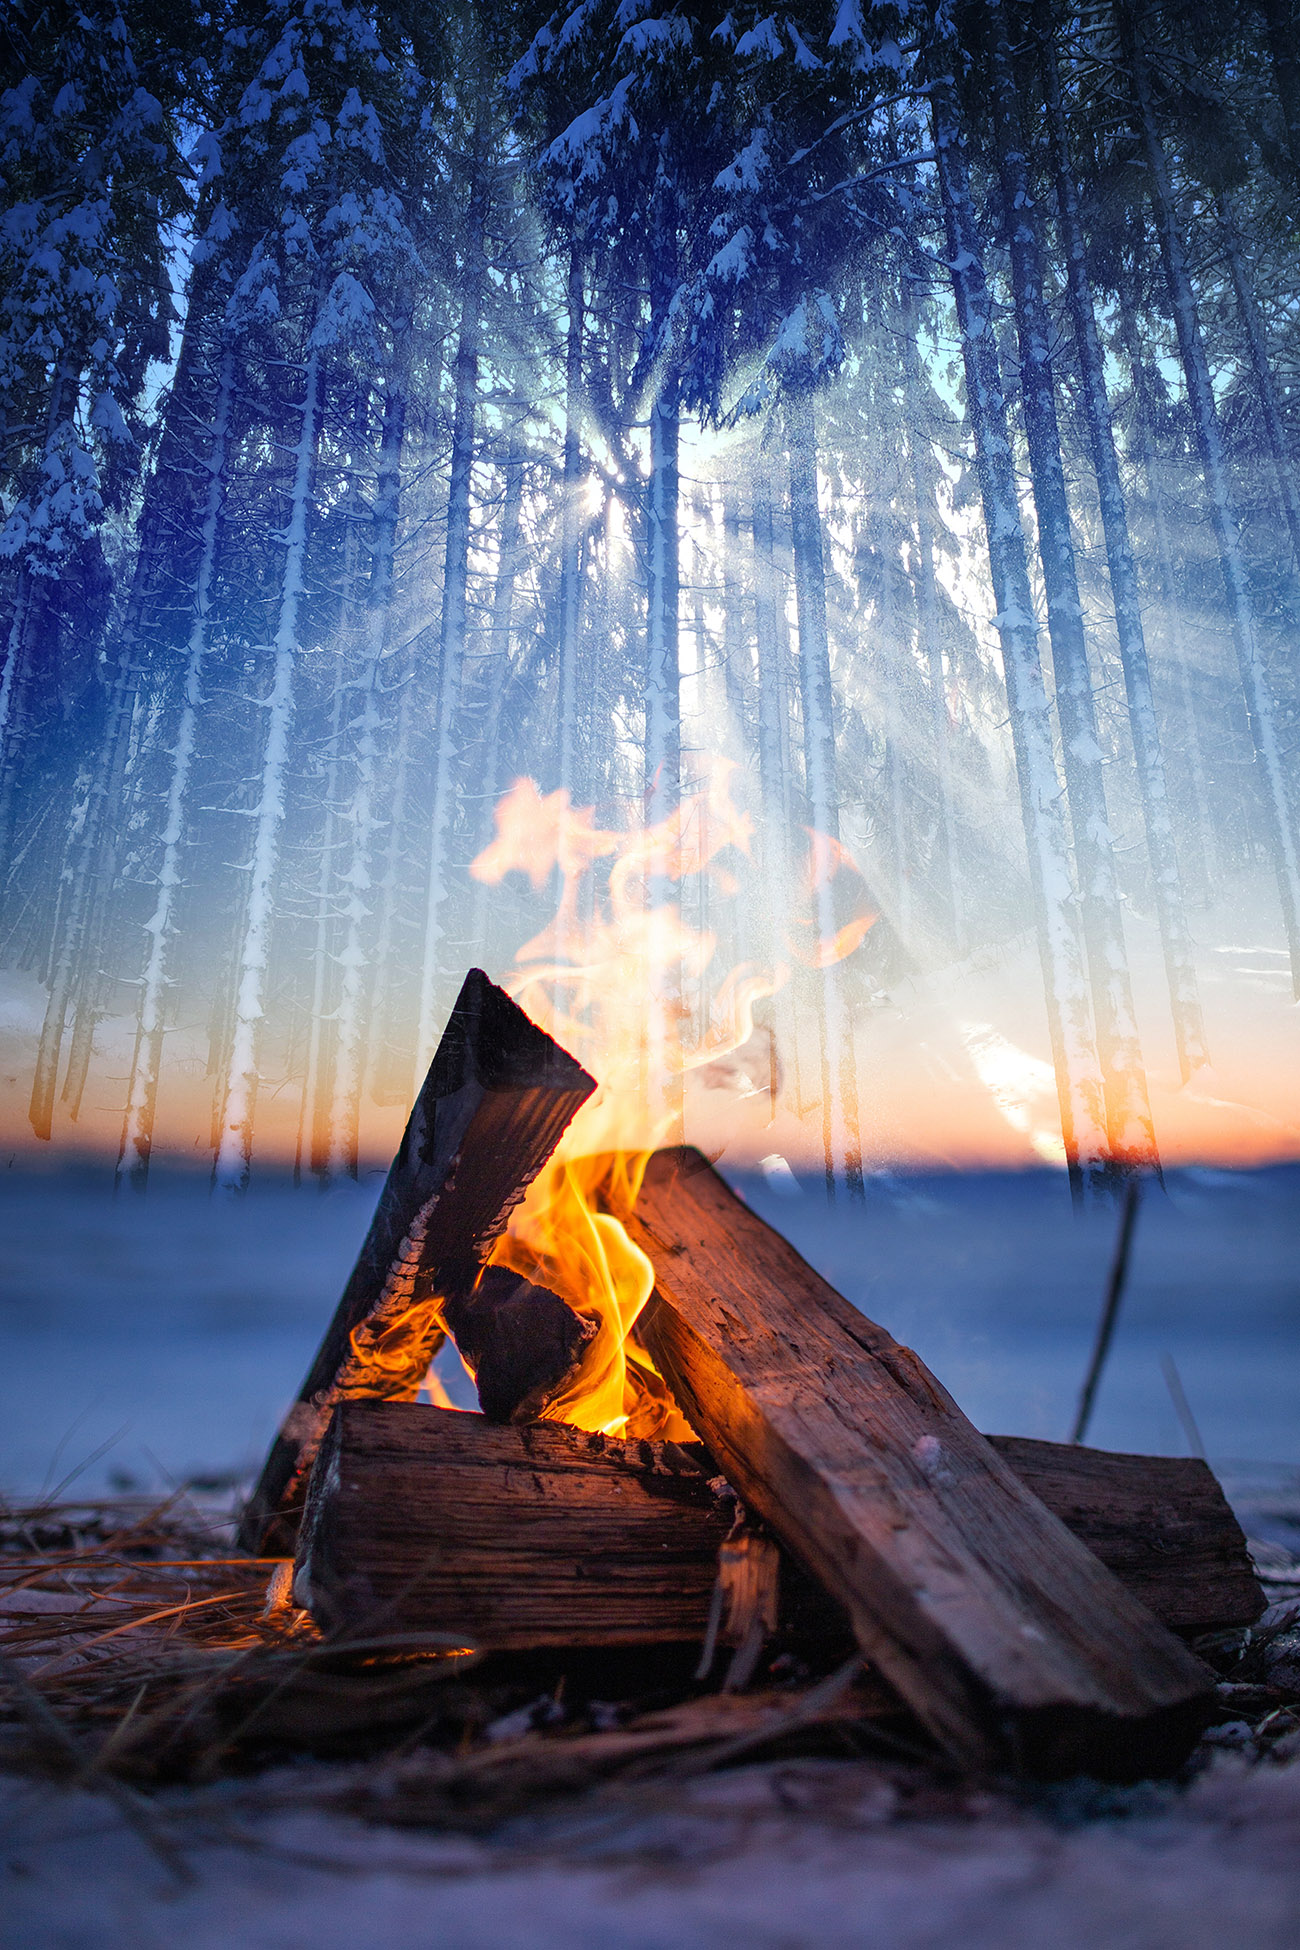 Wintery Wood Fire 01 - RF Stock Photo